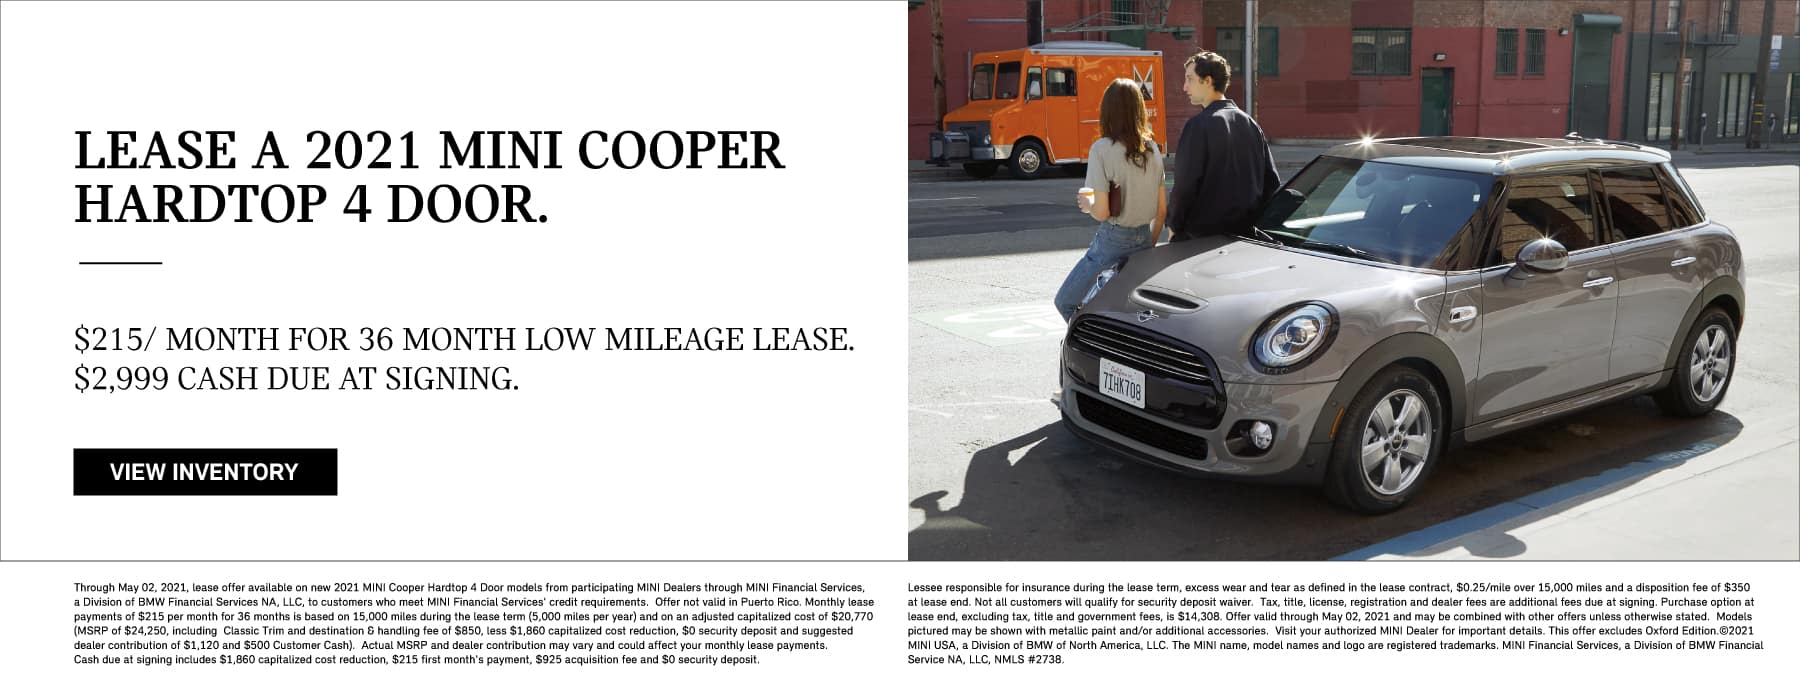 Lease a 2021 MINI Cooper Hardtop 2 Door. $199 per month for 36 low mileage lease. $2999 due at signing